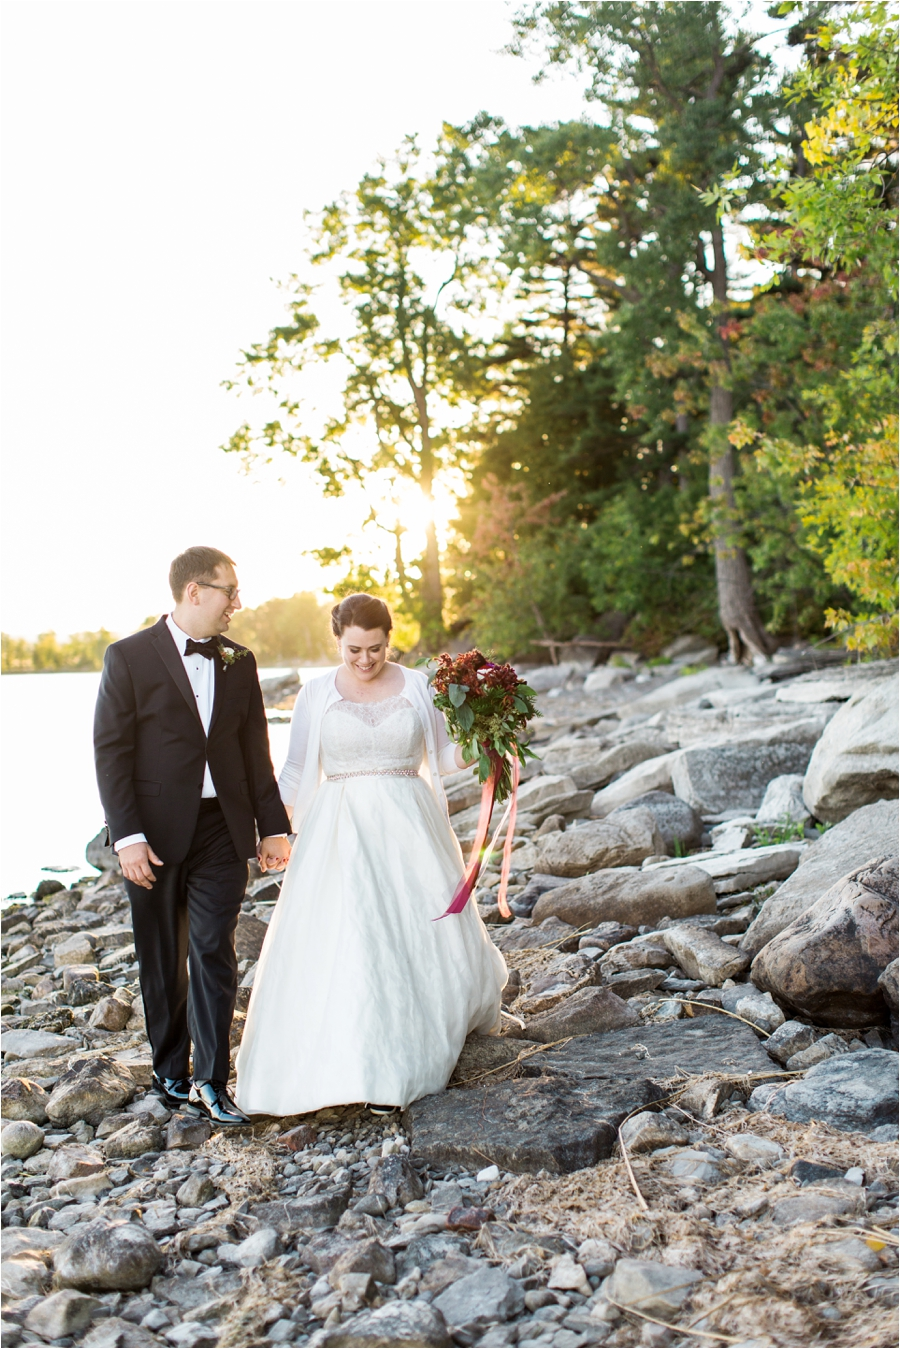 fall-adirondacks-lake-wedding-in-new-york-by-charlottesville-wedding-photographer-amy-nicole-photography_0087